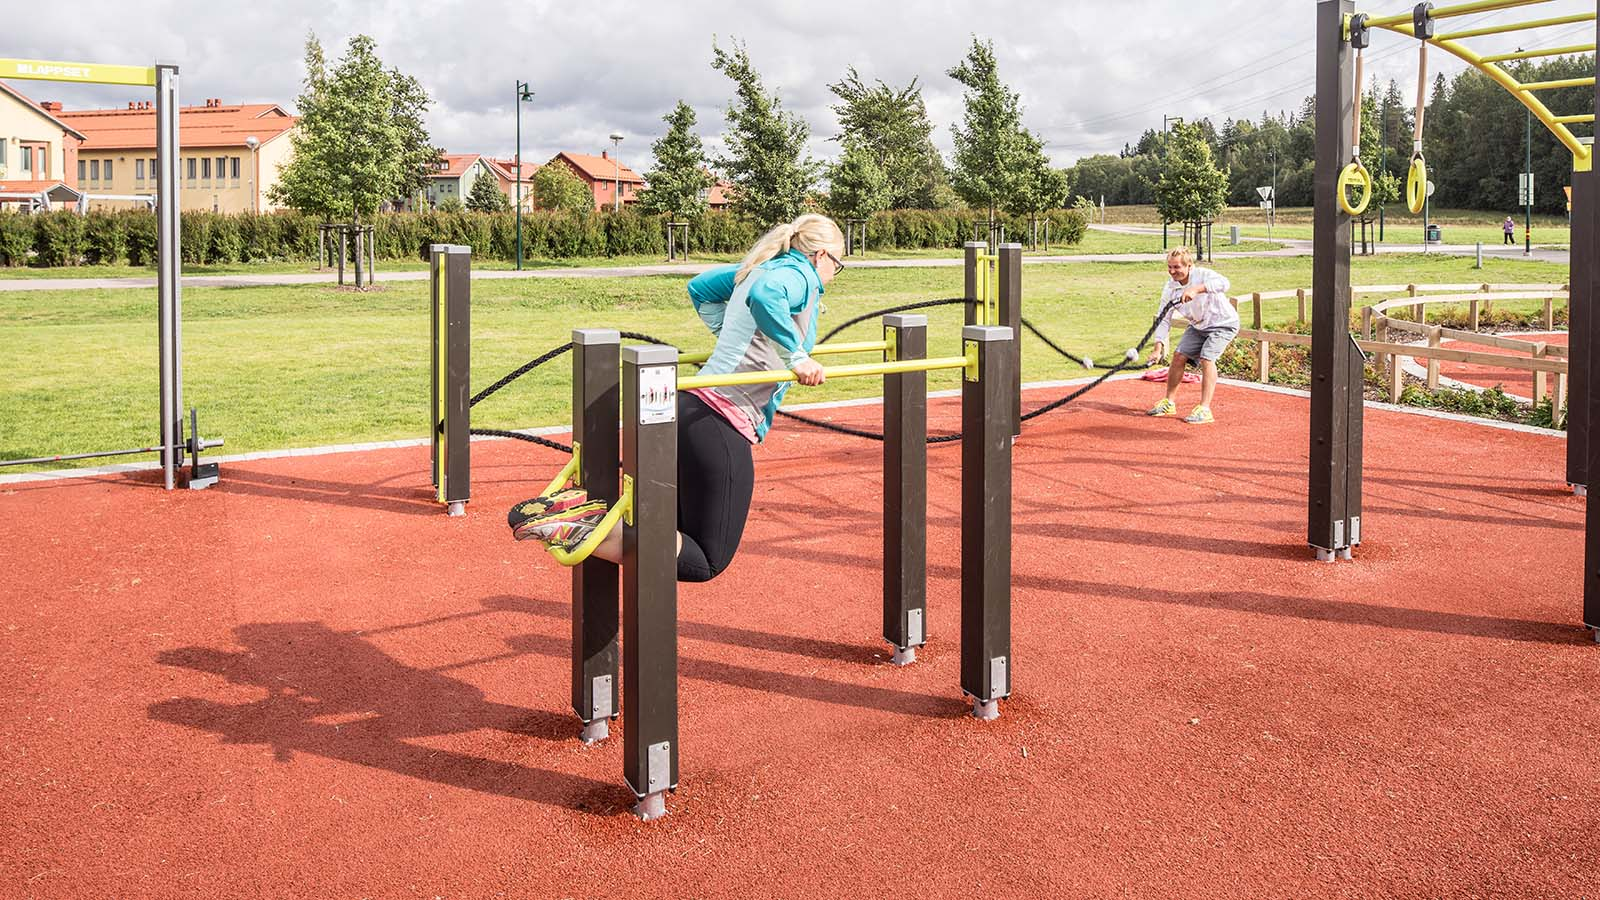 10 reasons why outdoor training is better than a gym workout - www